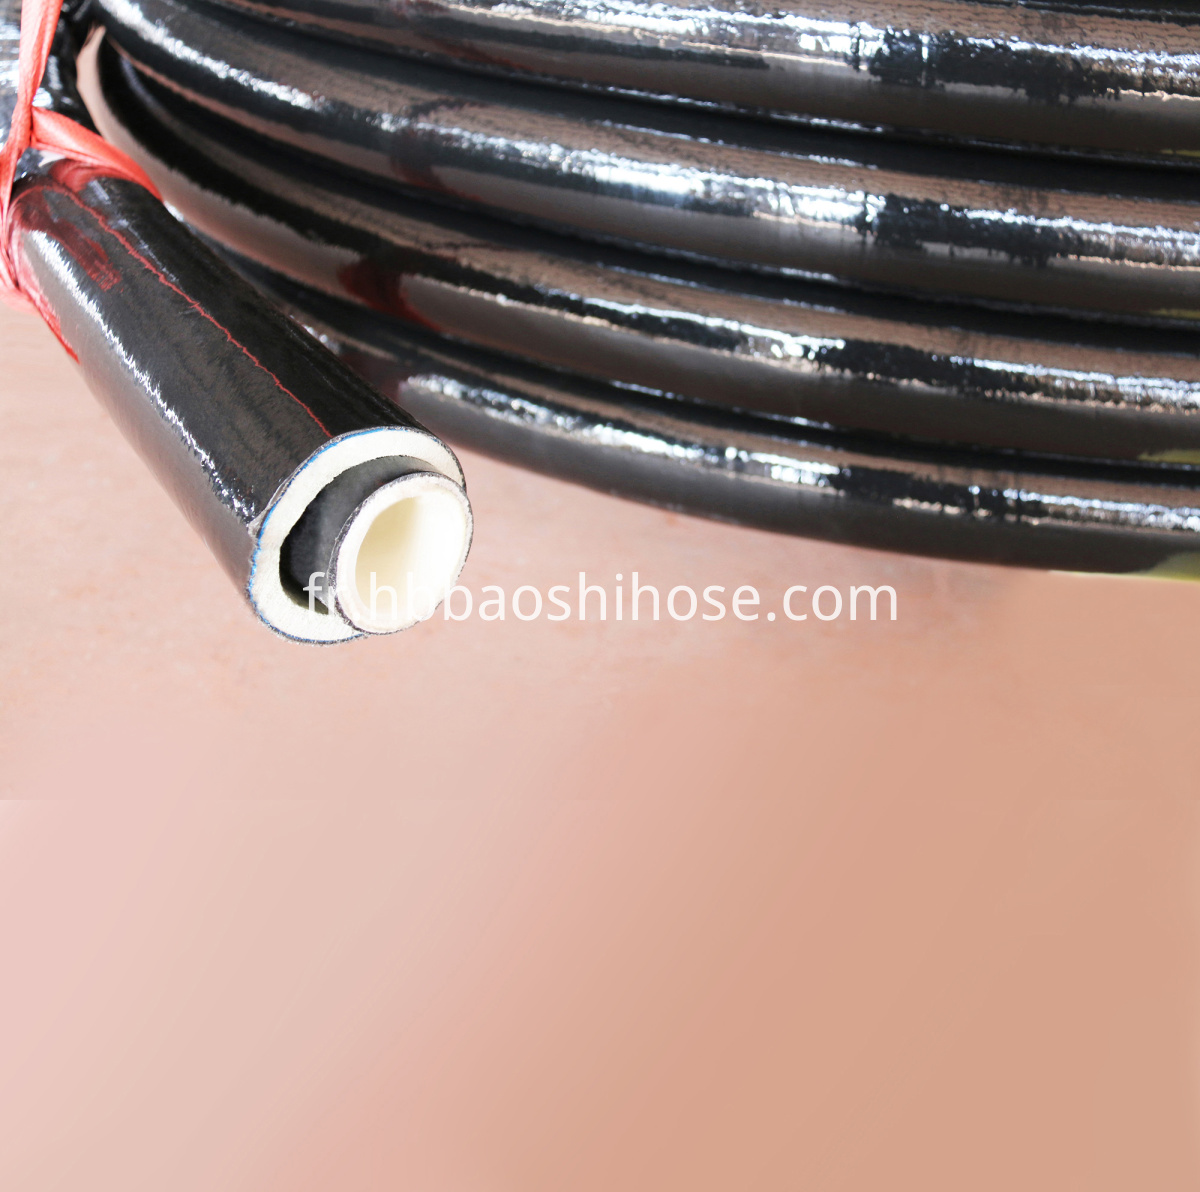 High Pressure Alcohol Pipe